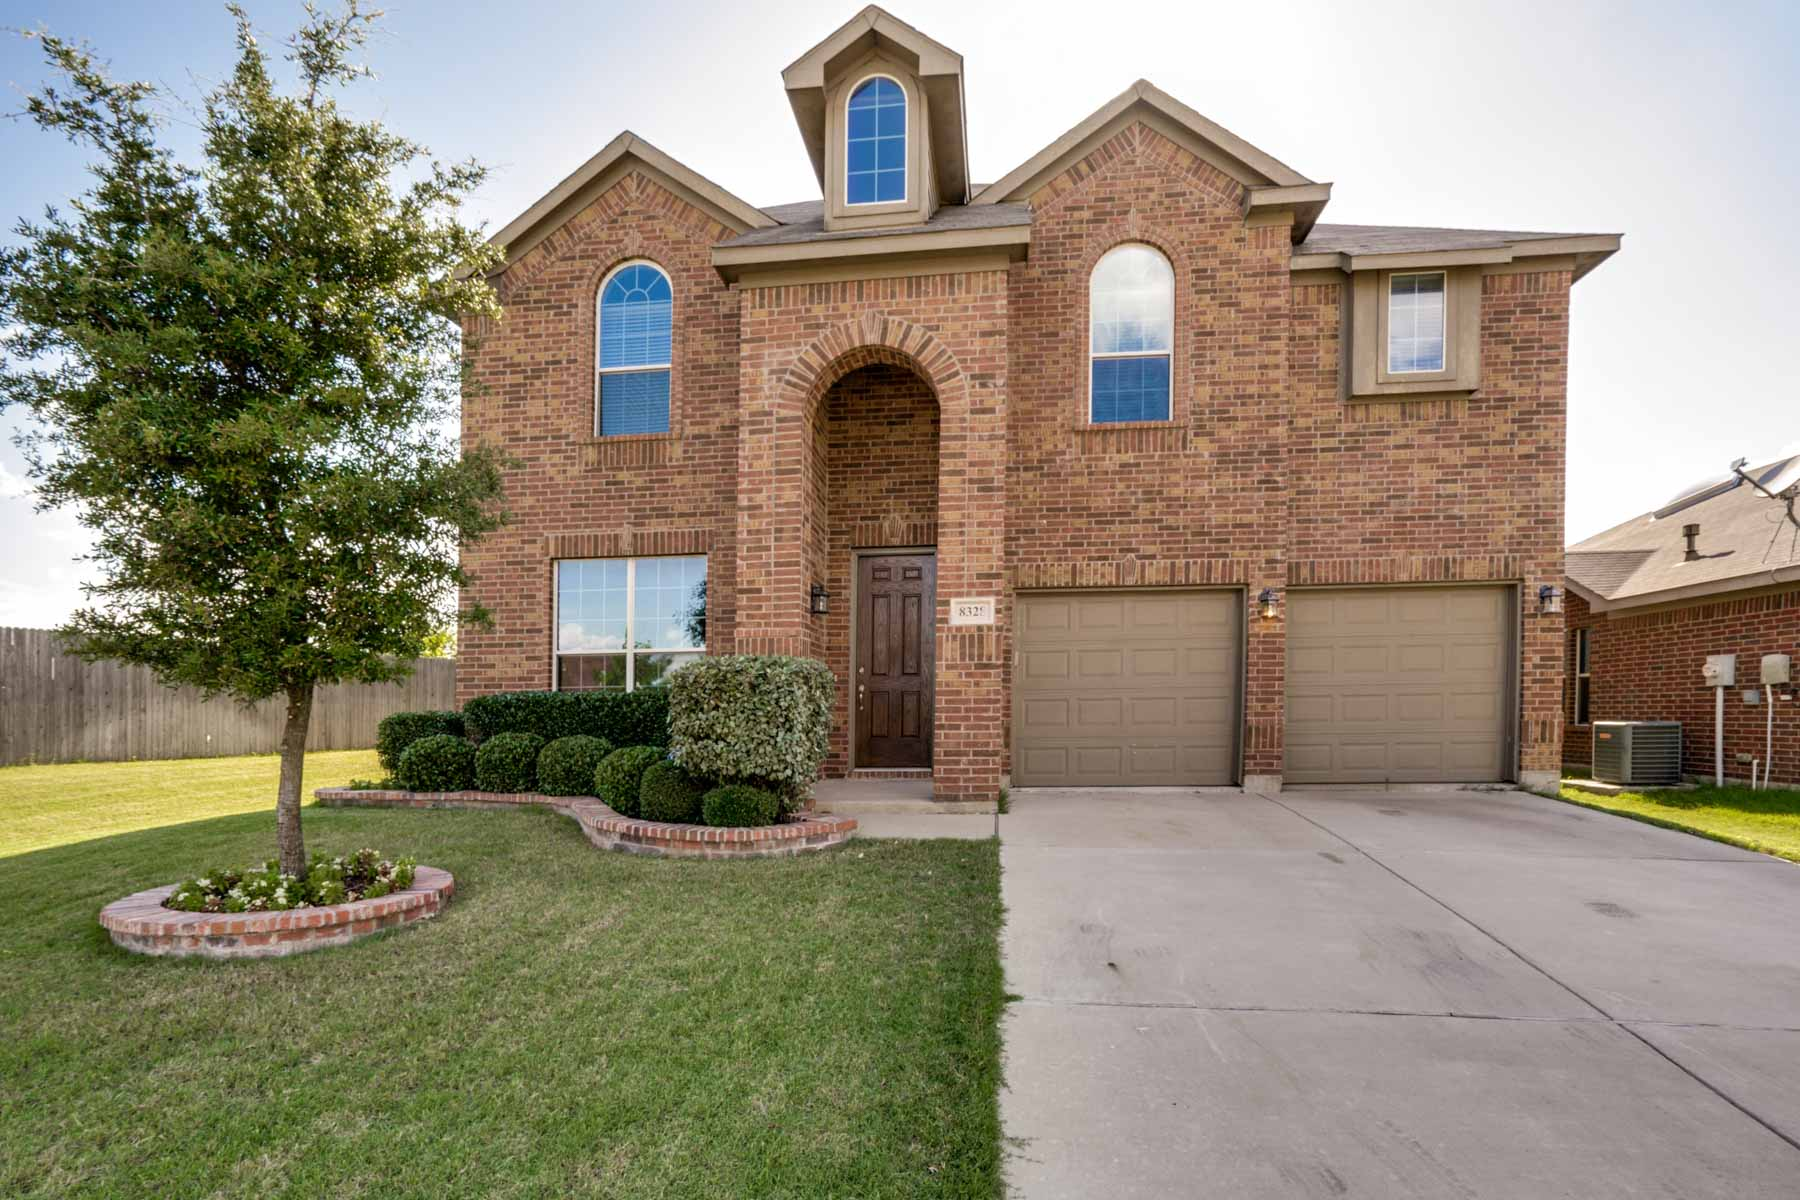 Single Family Home for Sale at 8328 Orchard Creek Rd, Fort Worth Fort Worth, Texas, 76123 United States